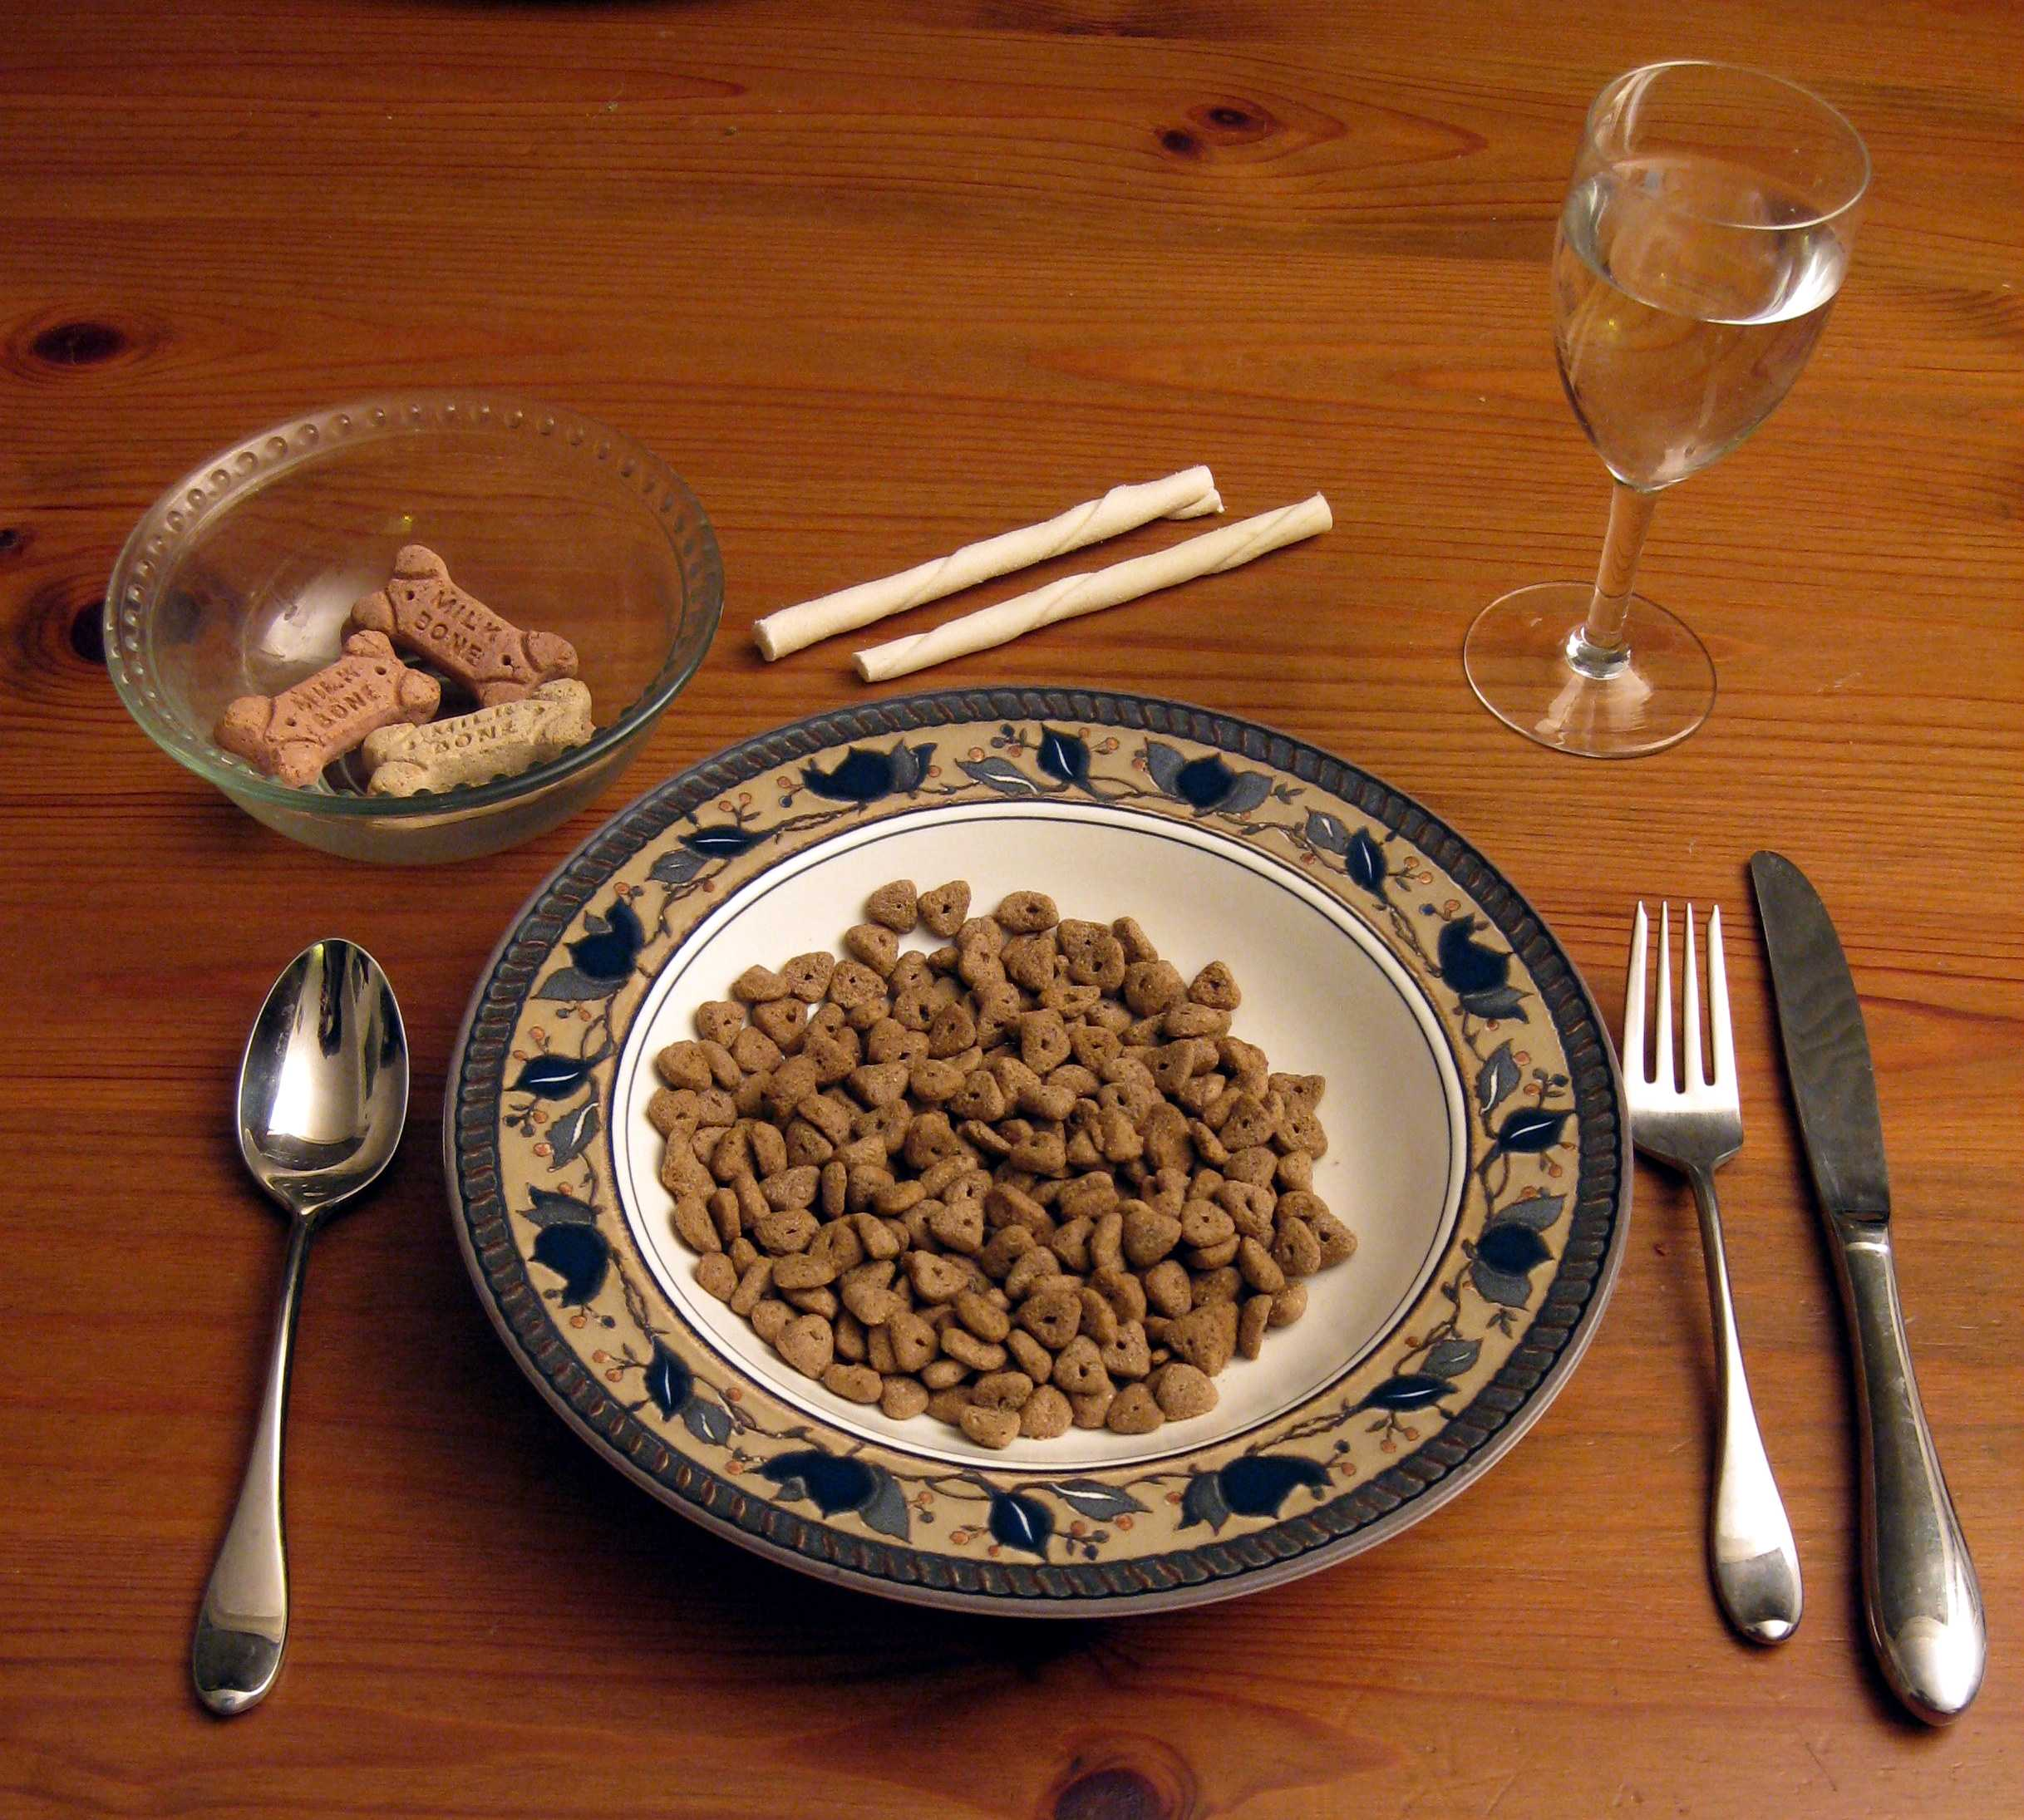 For $1 million, would you agree to eat nothing but dog food for one year?